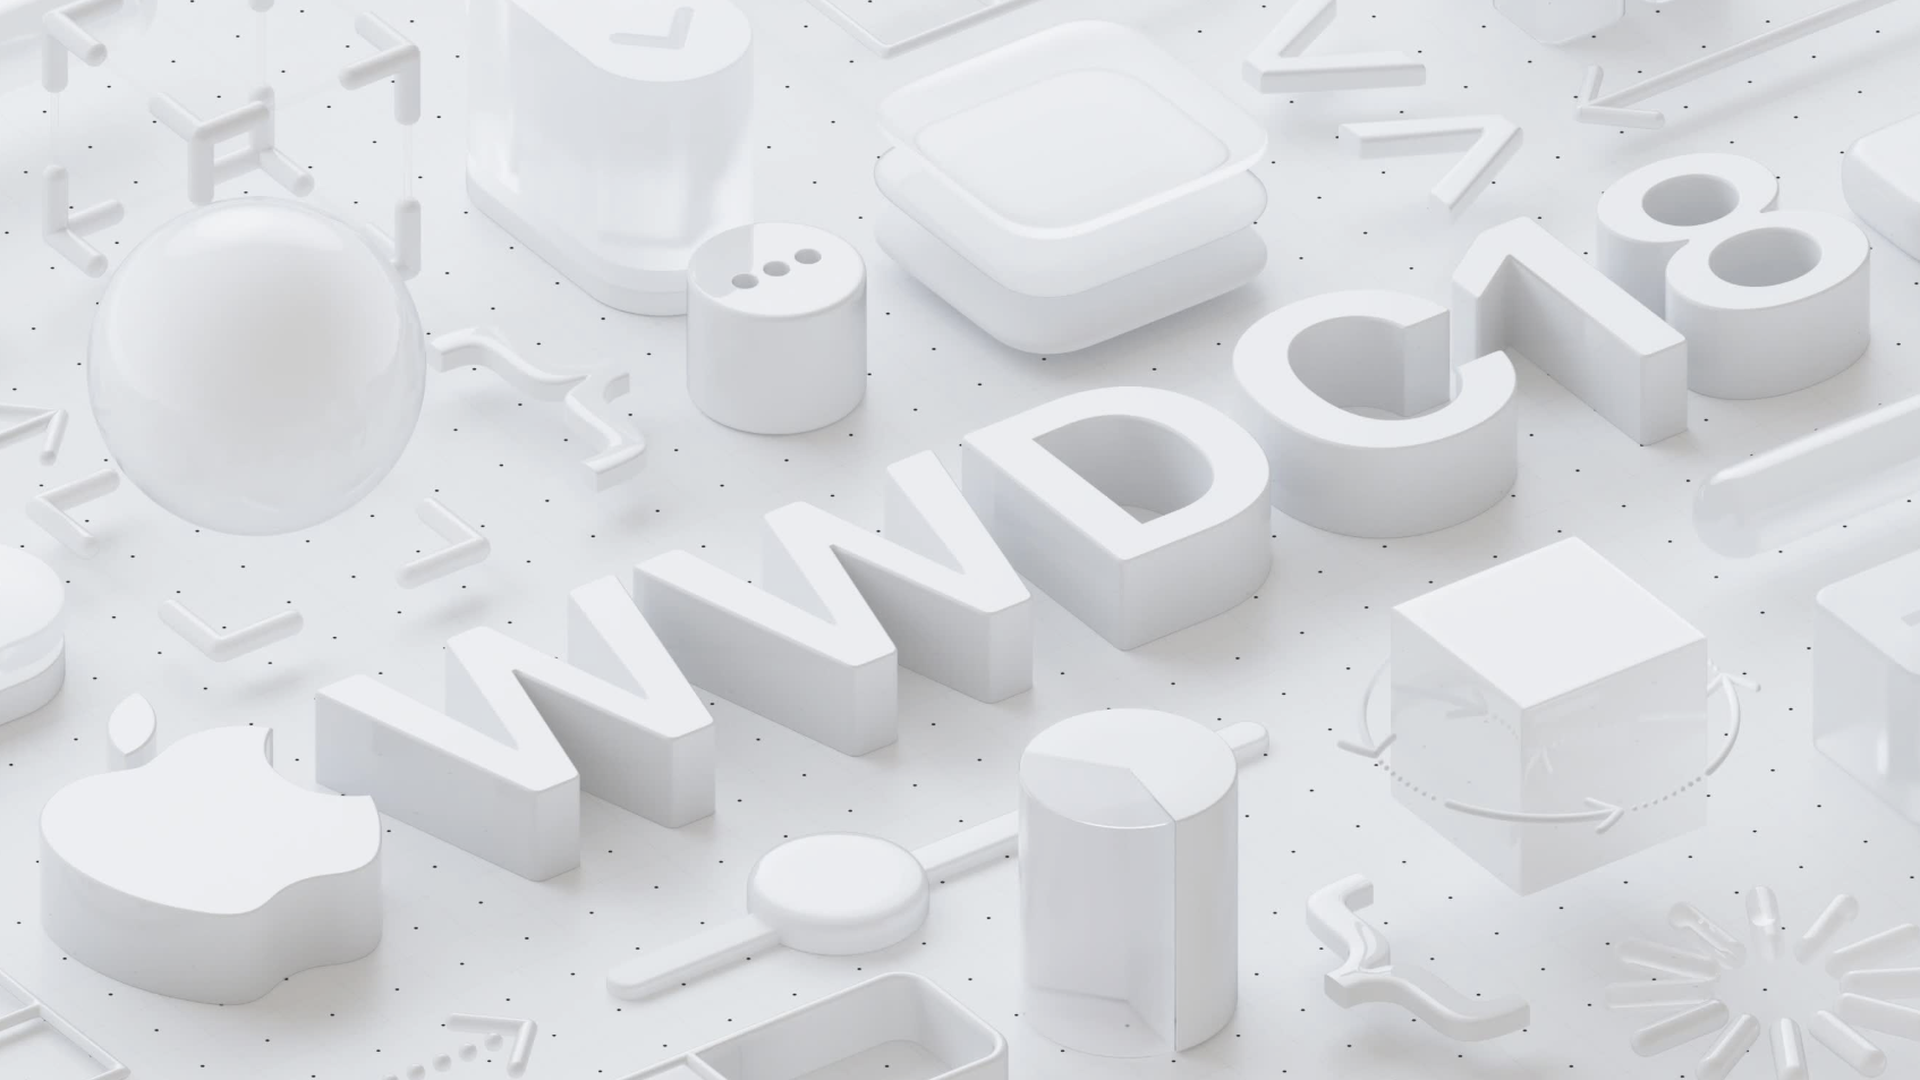 Screenshot of Apple's WWDC logo